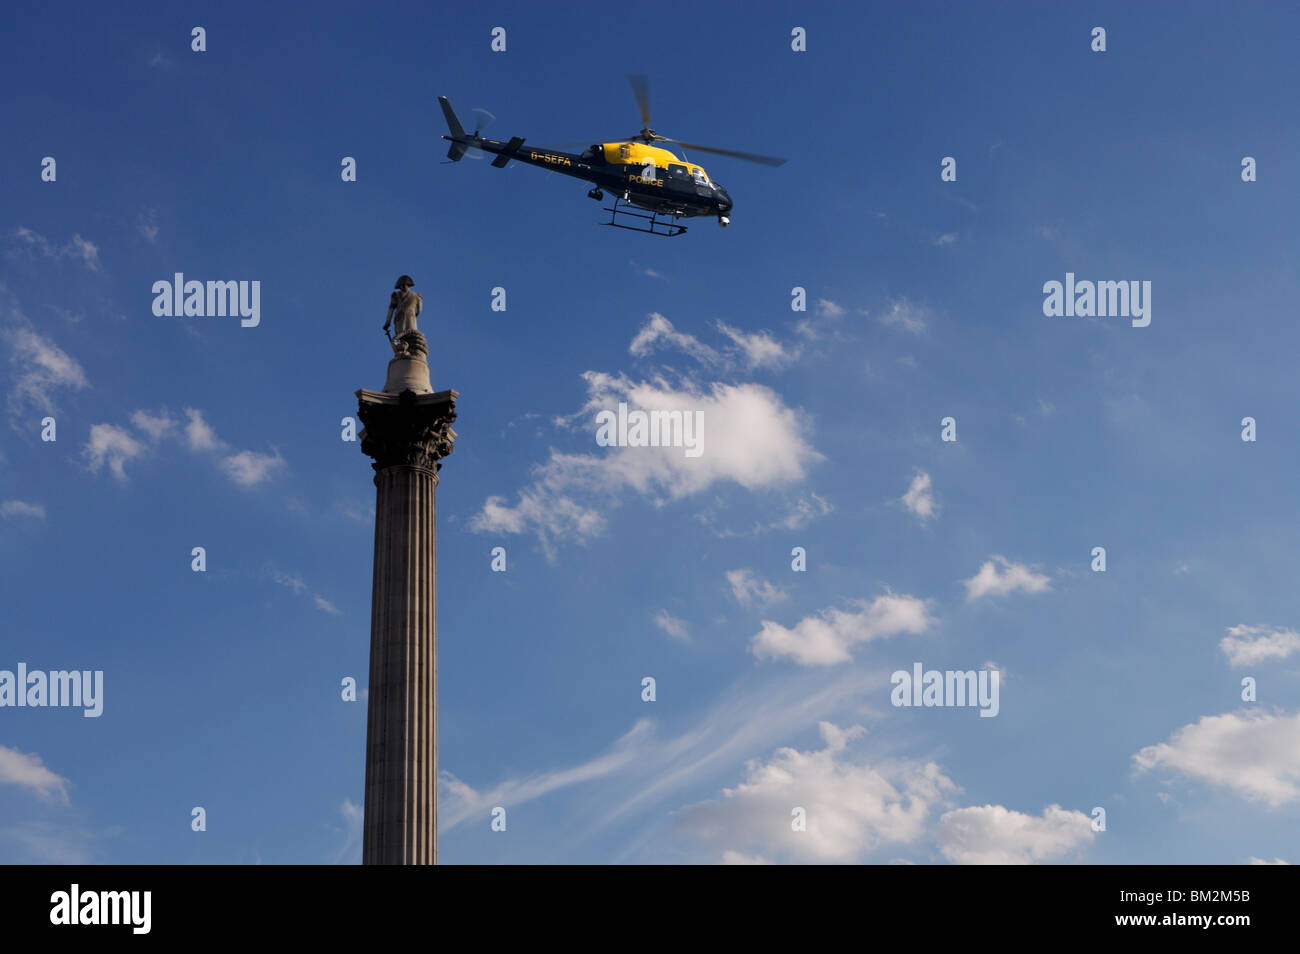 Nelsons Column and police helicopter, London, UK - Stock Image